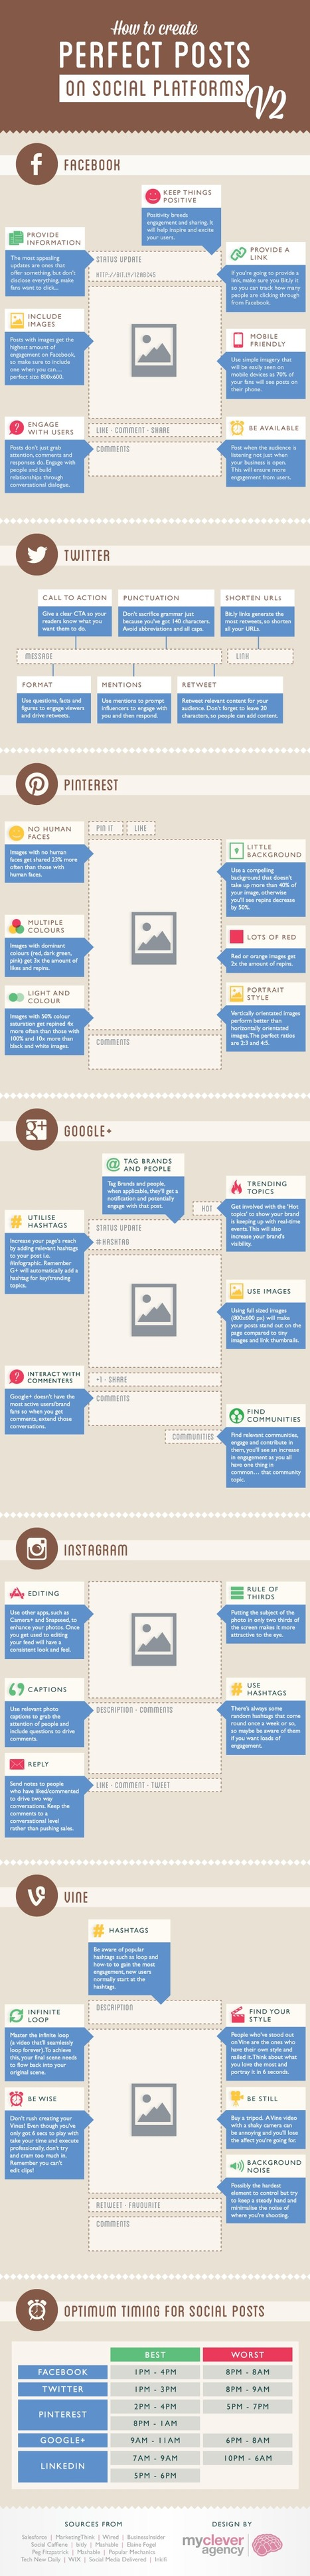 [InfoGraphic] How To Create Perfect Social Posts | Helping 6-Figure Companies Grow To 7-Figures Online | Scoop.it